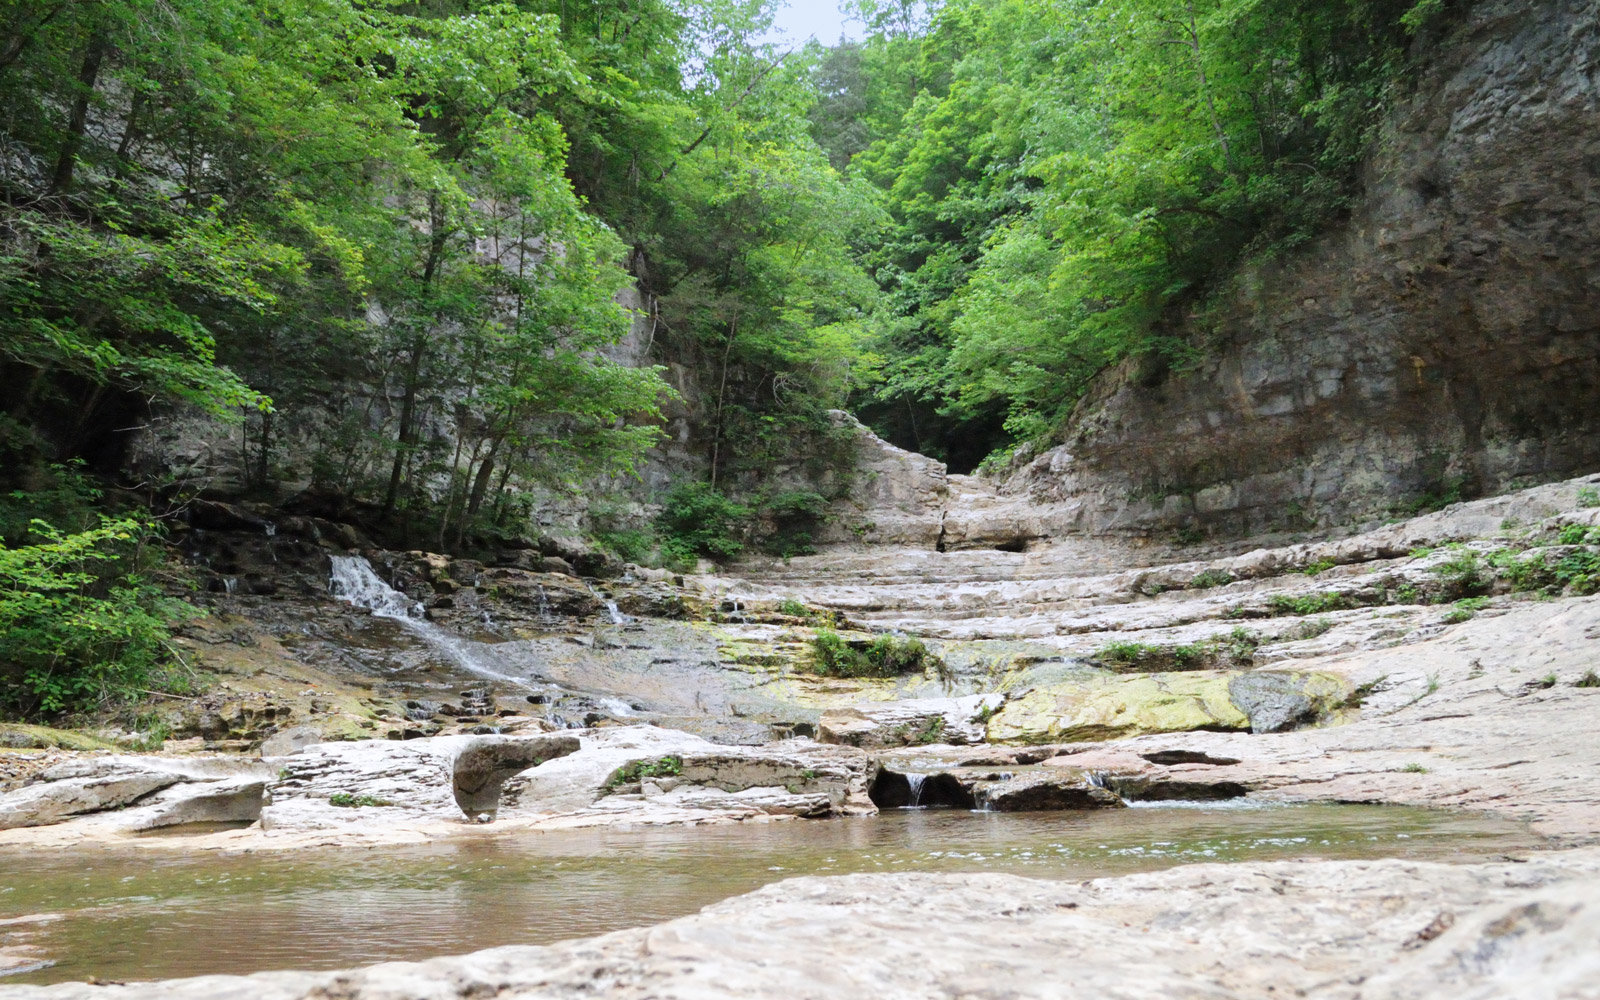 Photograph looking into Walls of Jericho canyon in northern Alabama.  Canyon is located at the end of a trail near the Tennessee State Line.